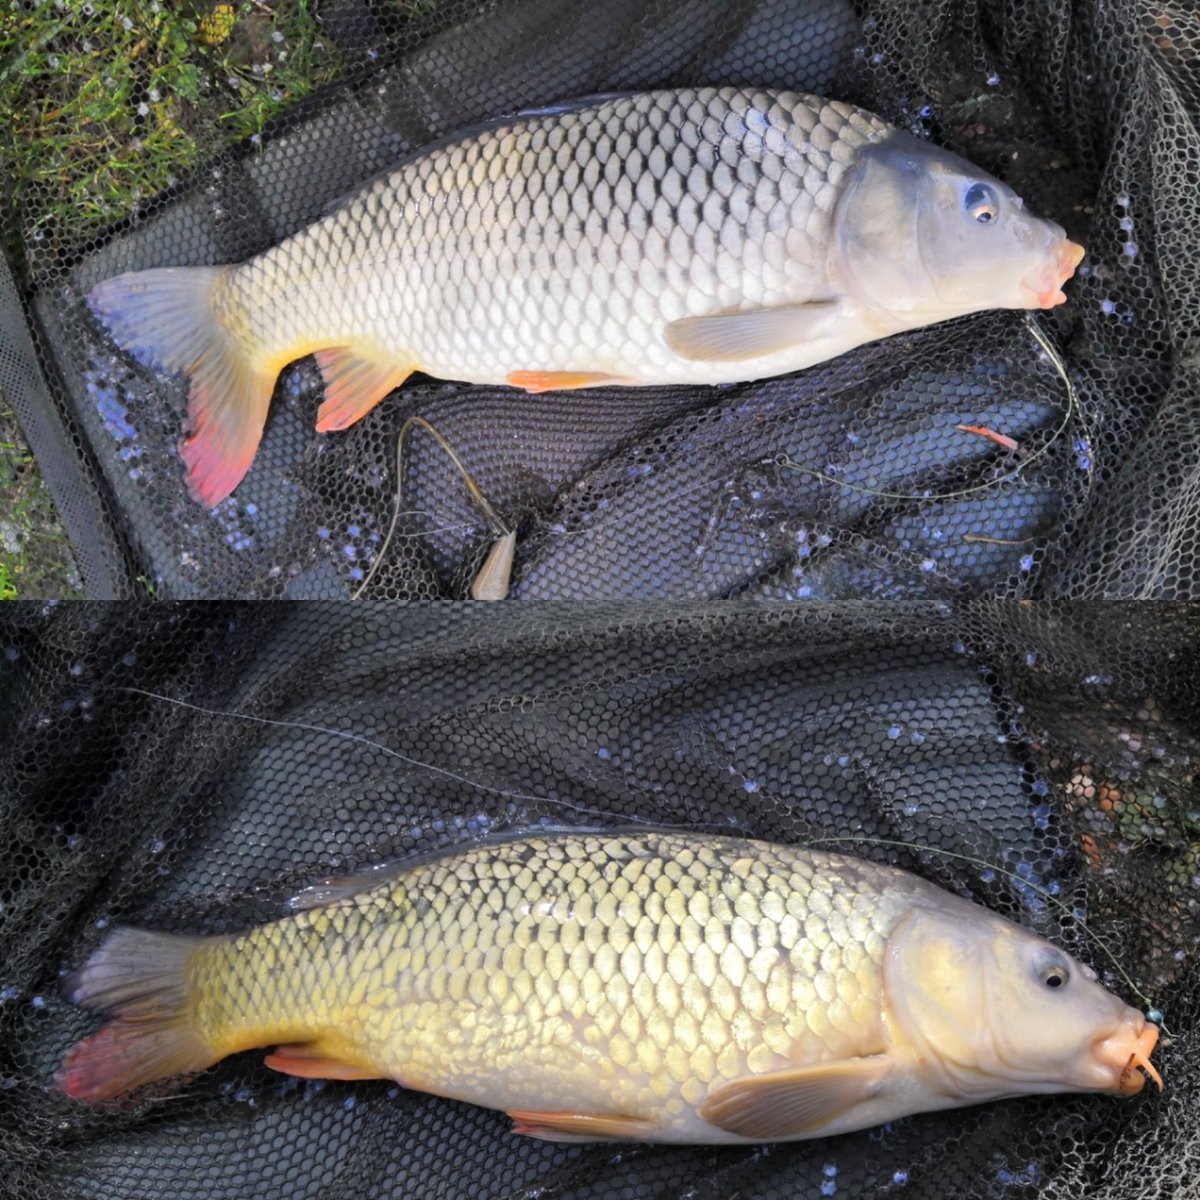 Good days fishing 1<b>6lb</b> being biggest carp. #carpfishing #carp 🎣🐟 https://t.co/p0UlcwXGF